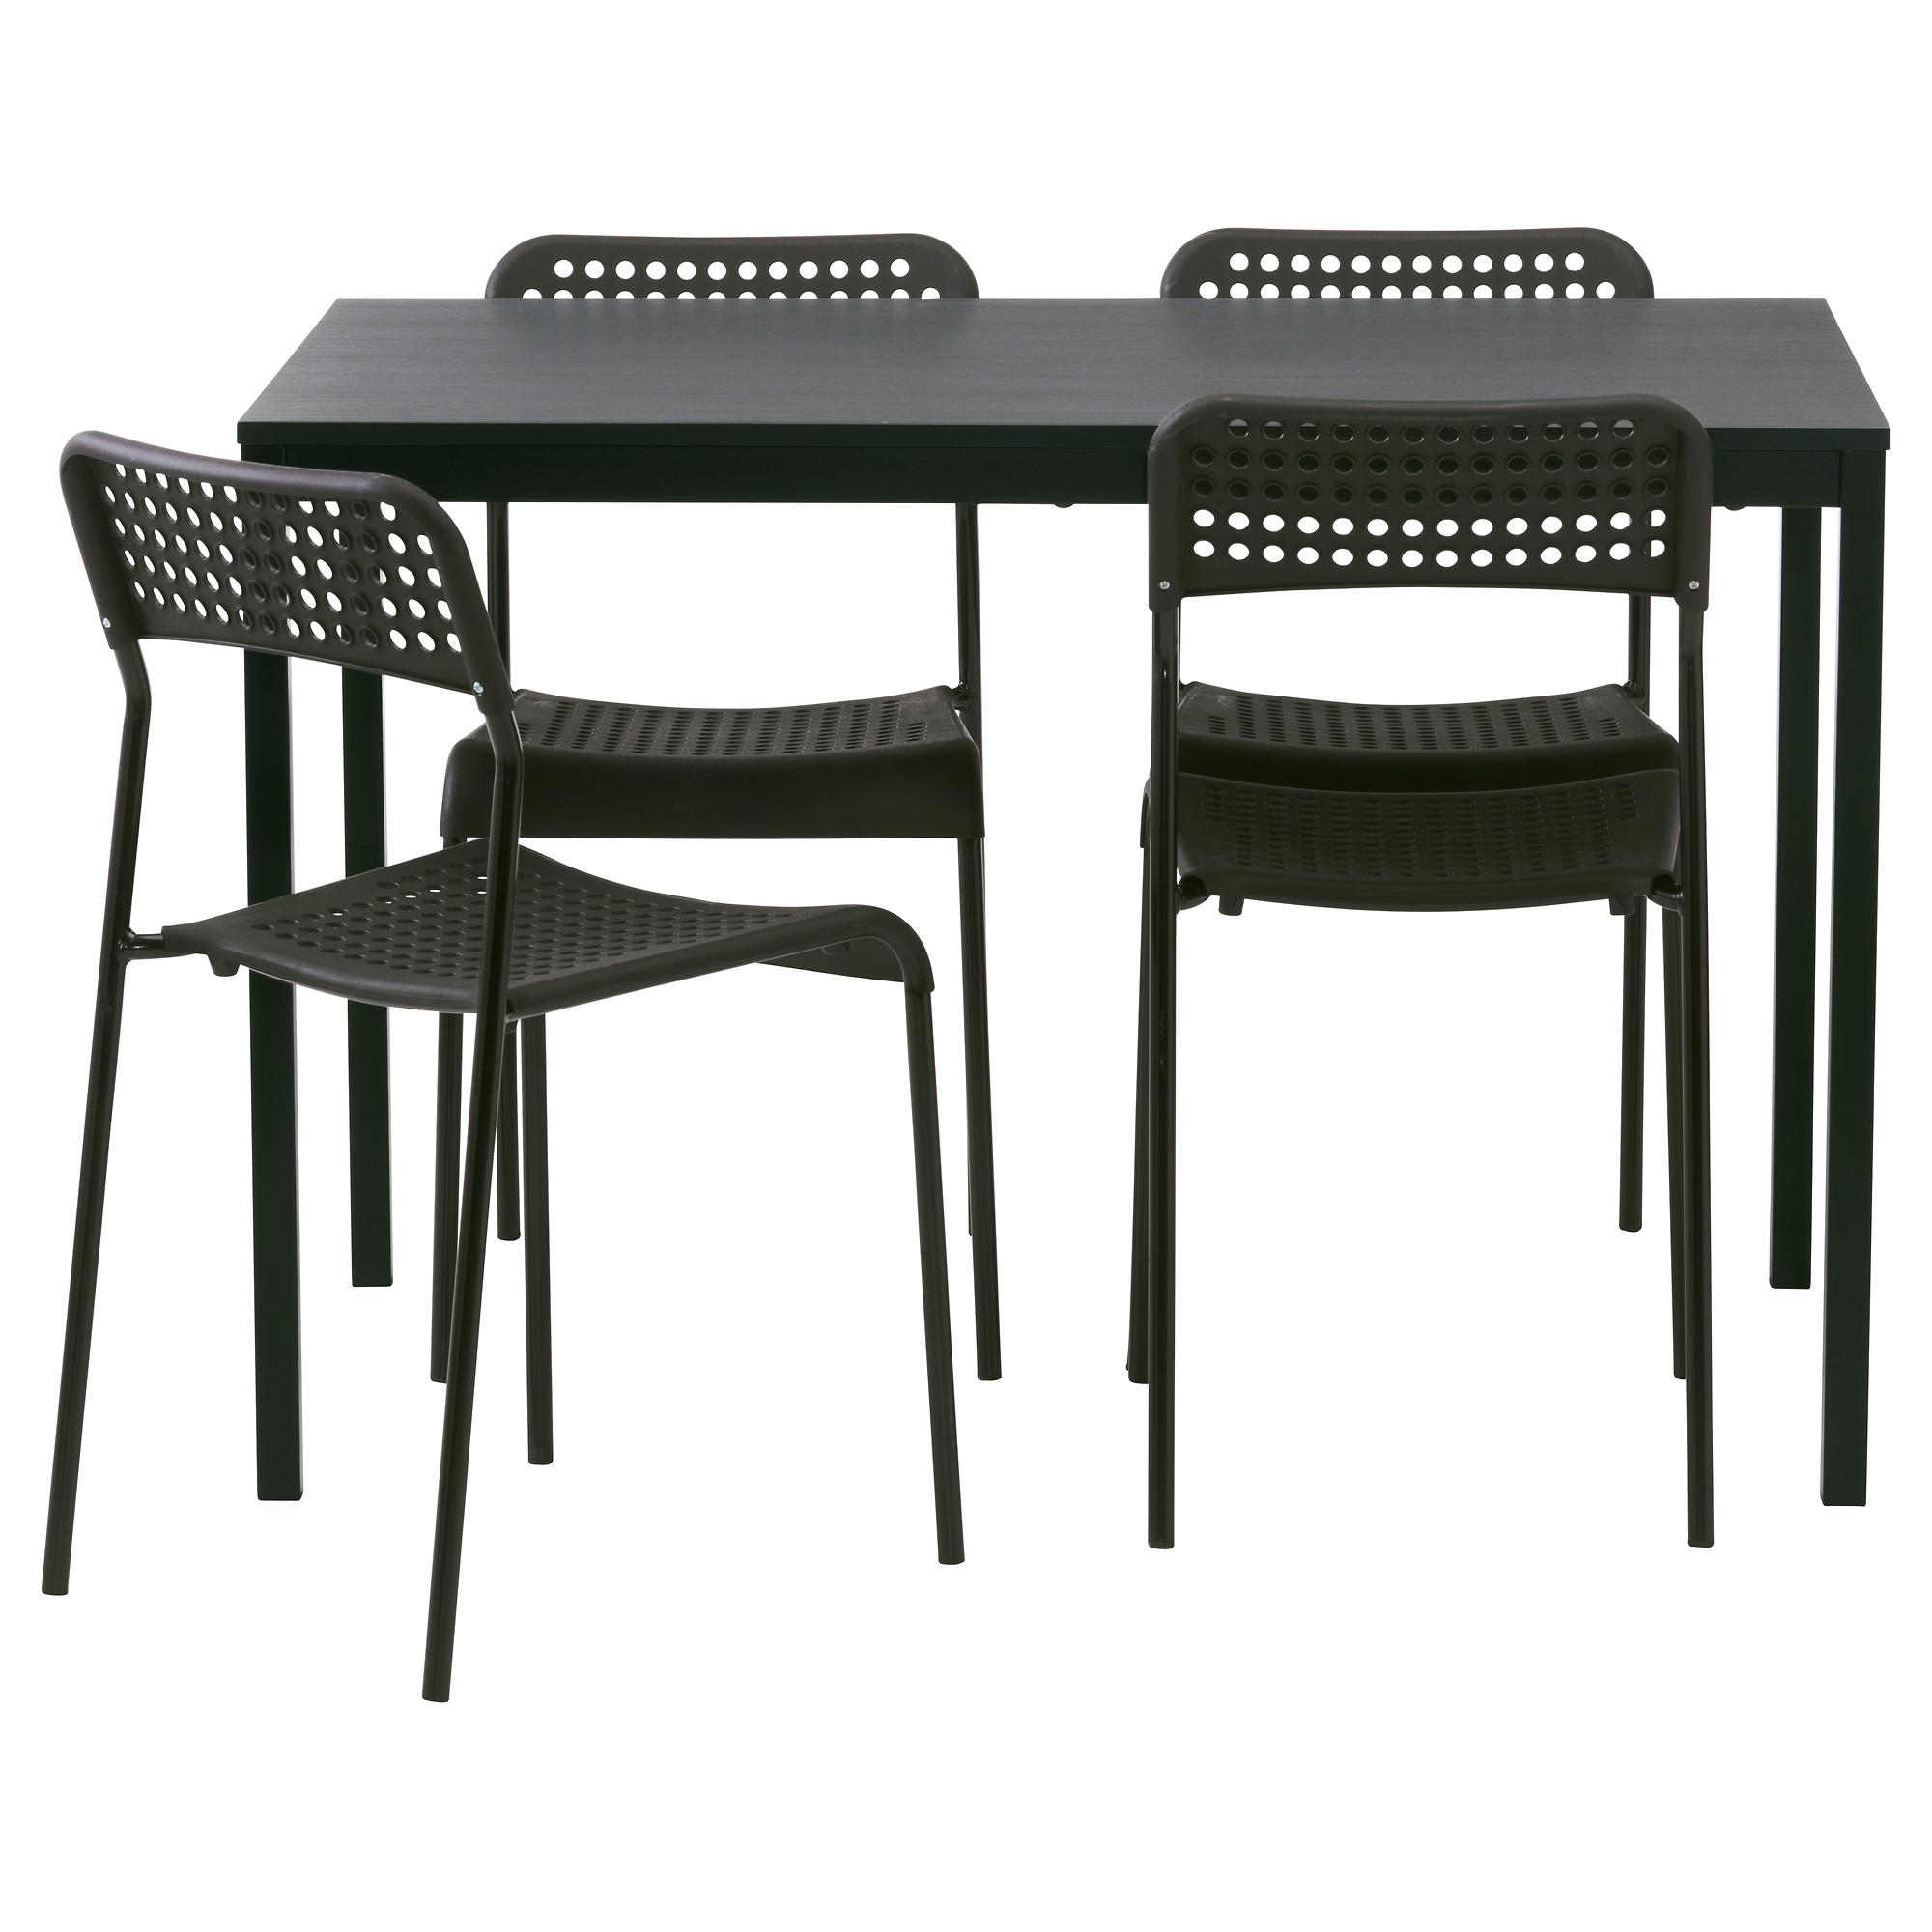 TREND ADDE Table And 4 Chairs